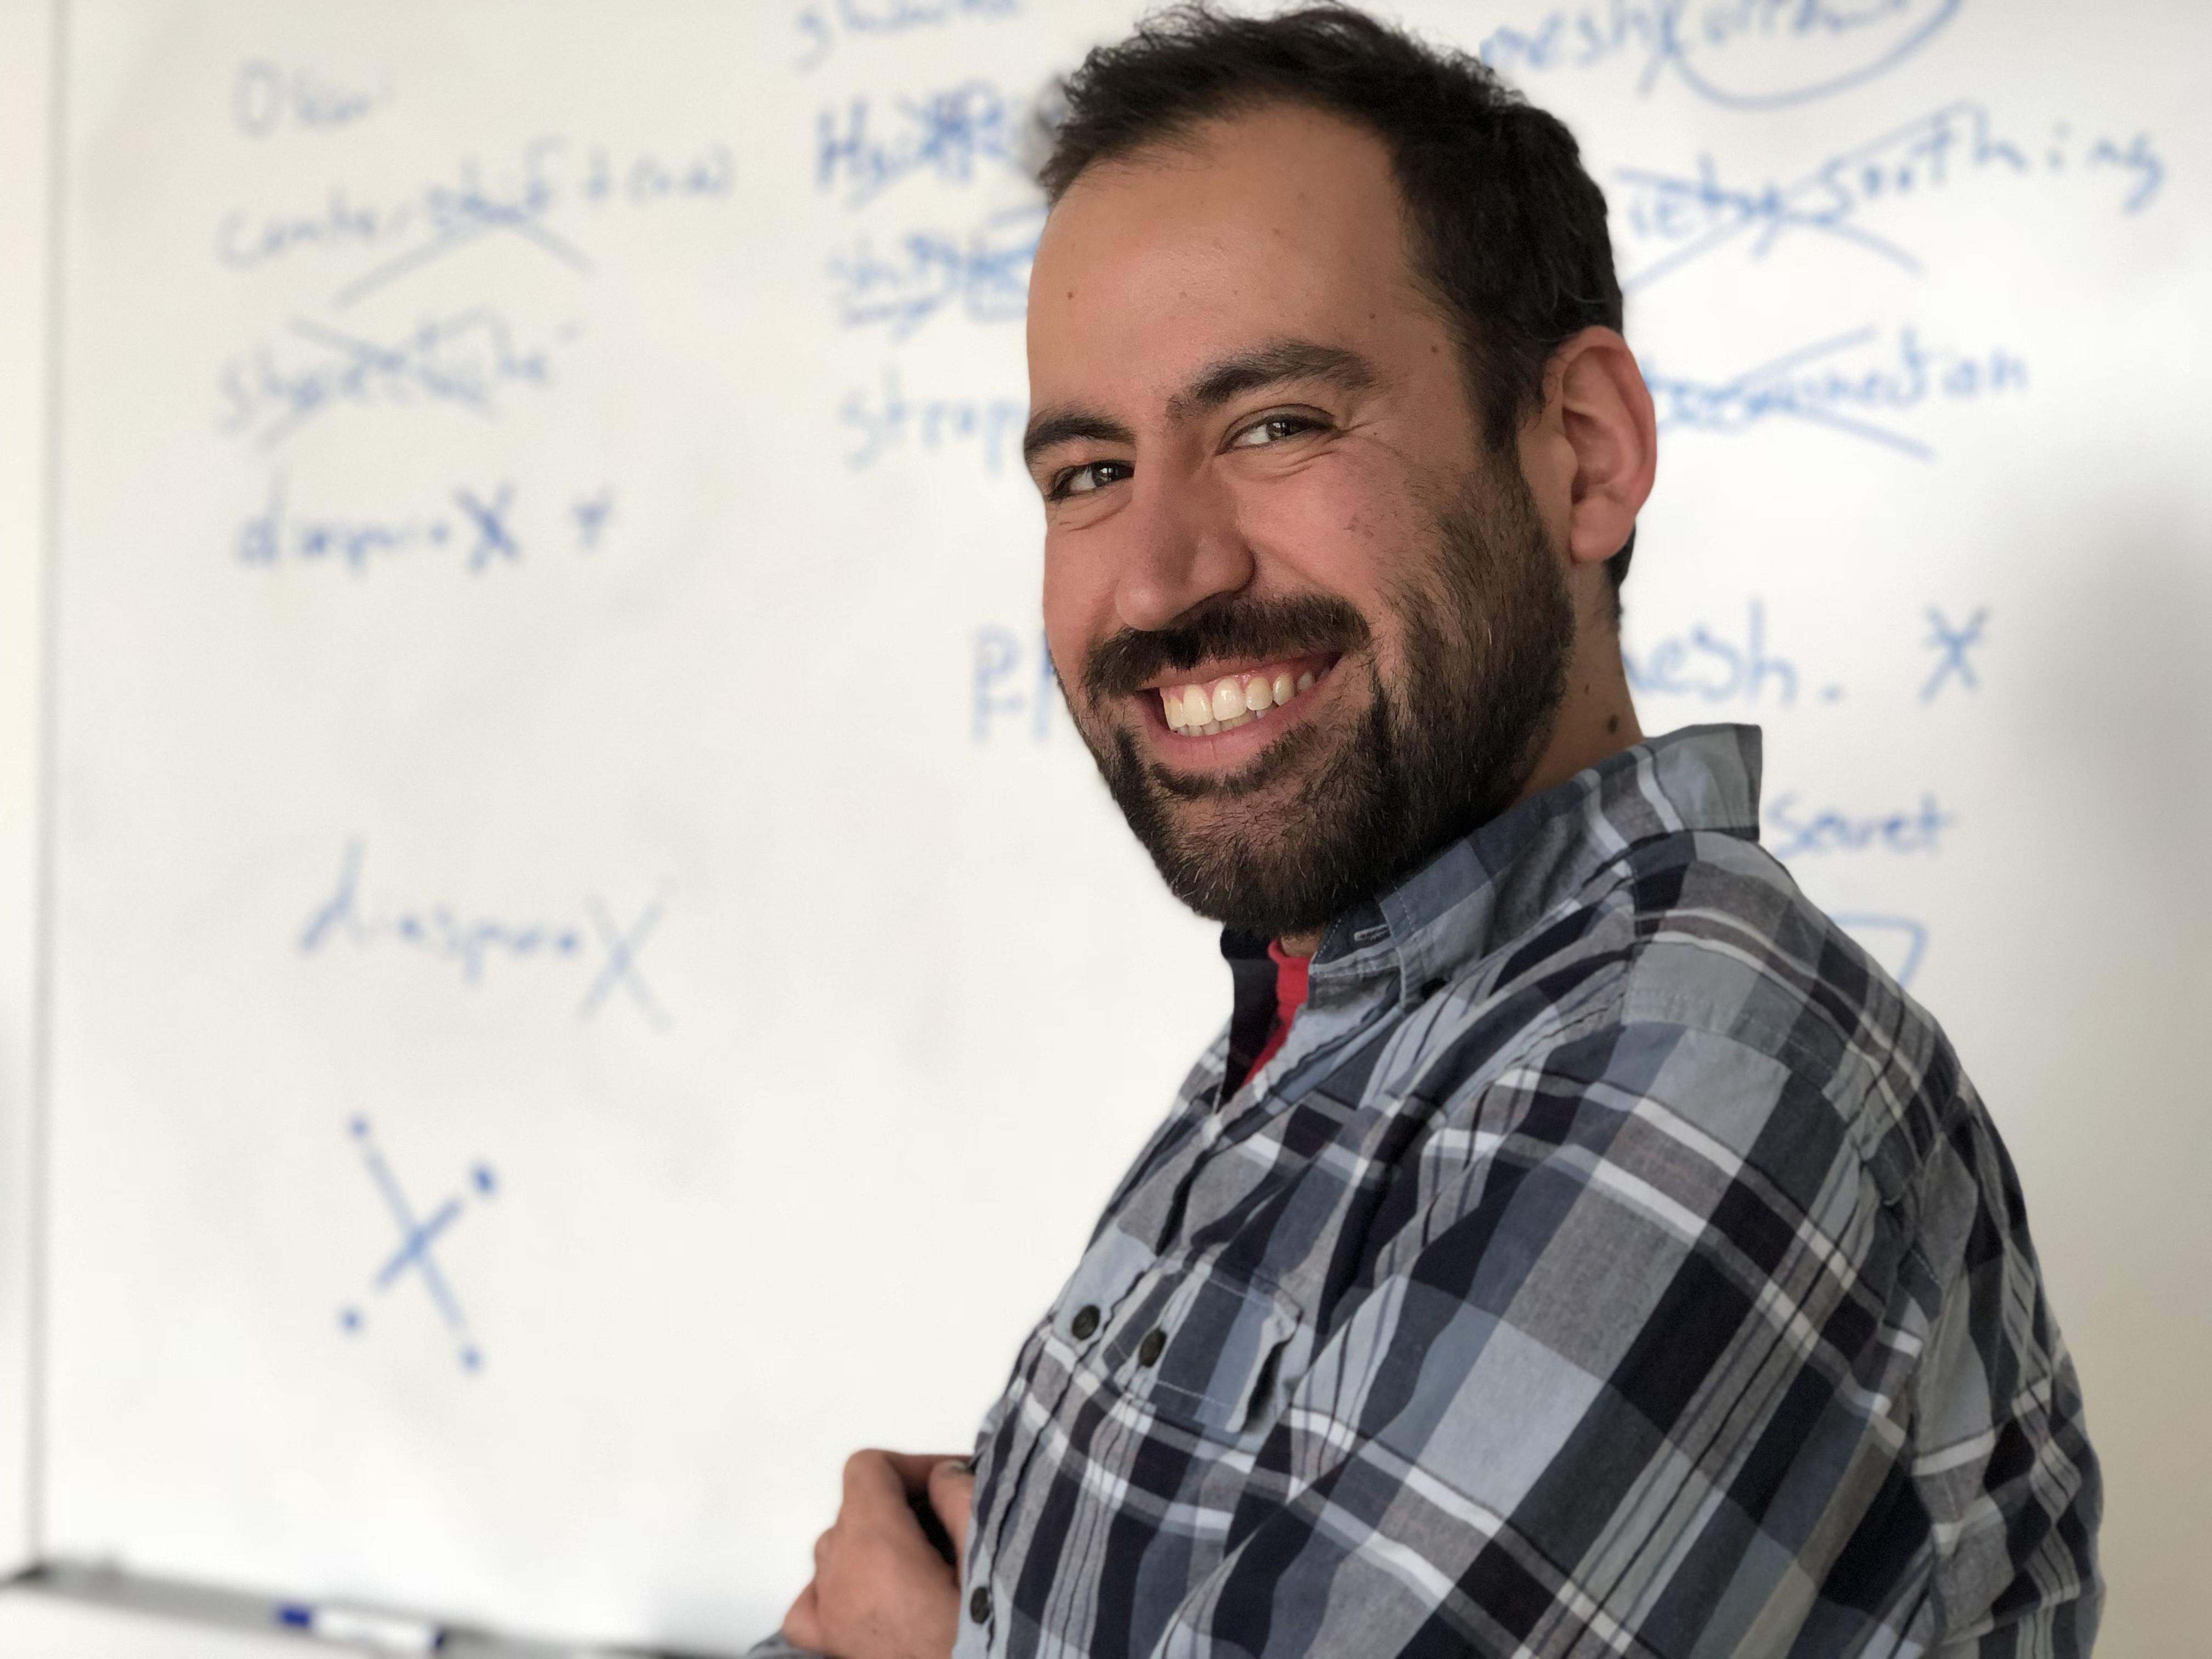 A man in a plaid shirt crosses his arms and faces the viewer. He stands in front of a whiteboard with lists of words, some crossed out.